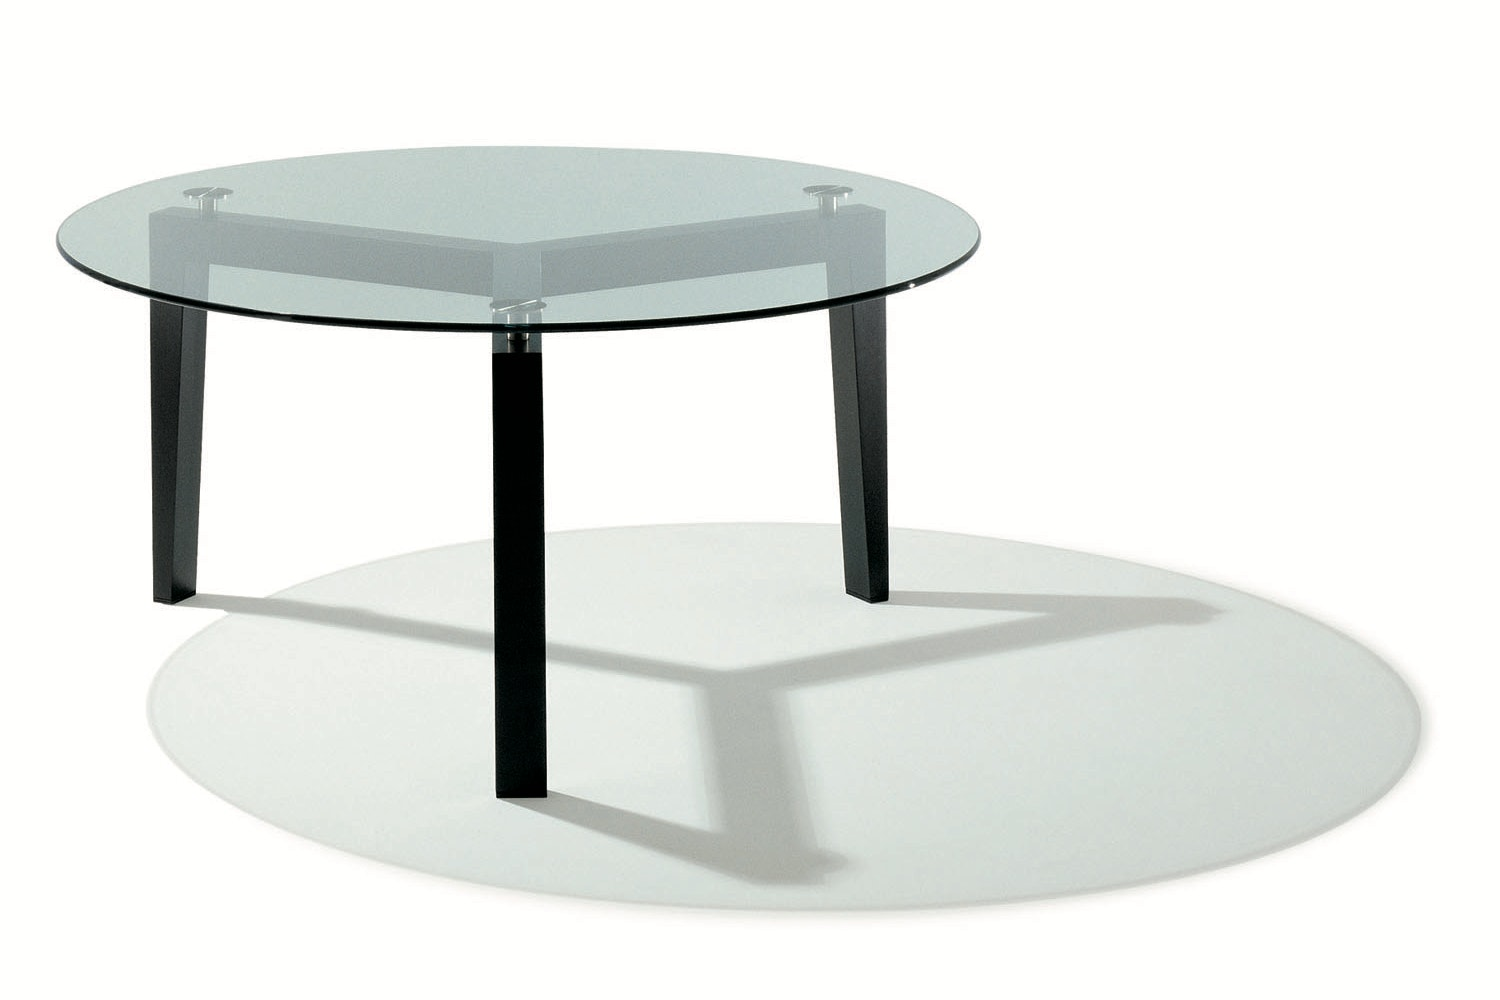 Artu Table by Massimo Scolari for Giorgetti